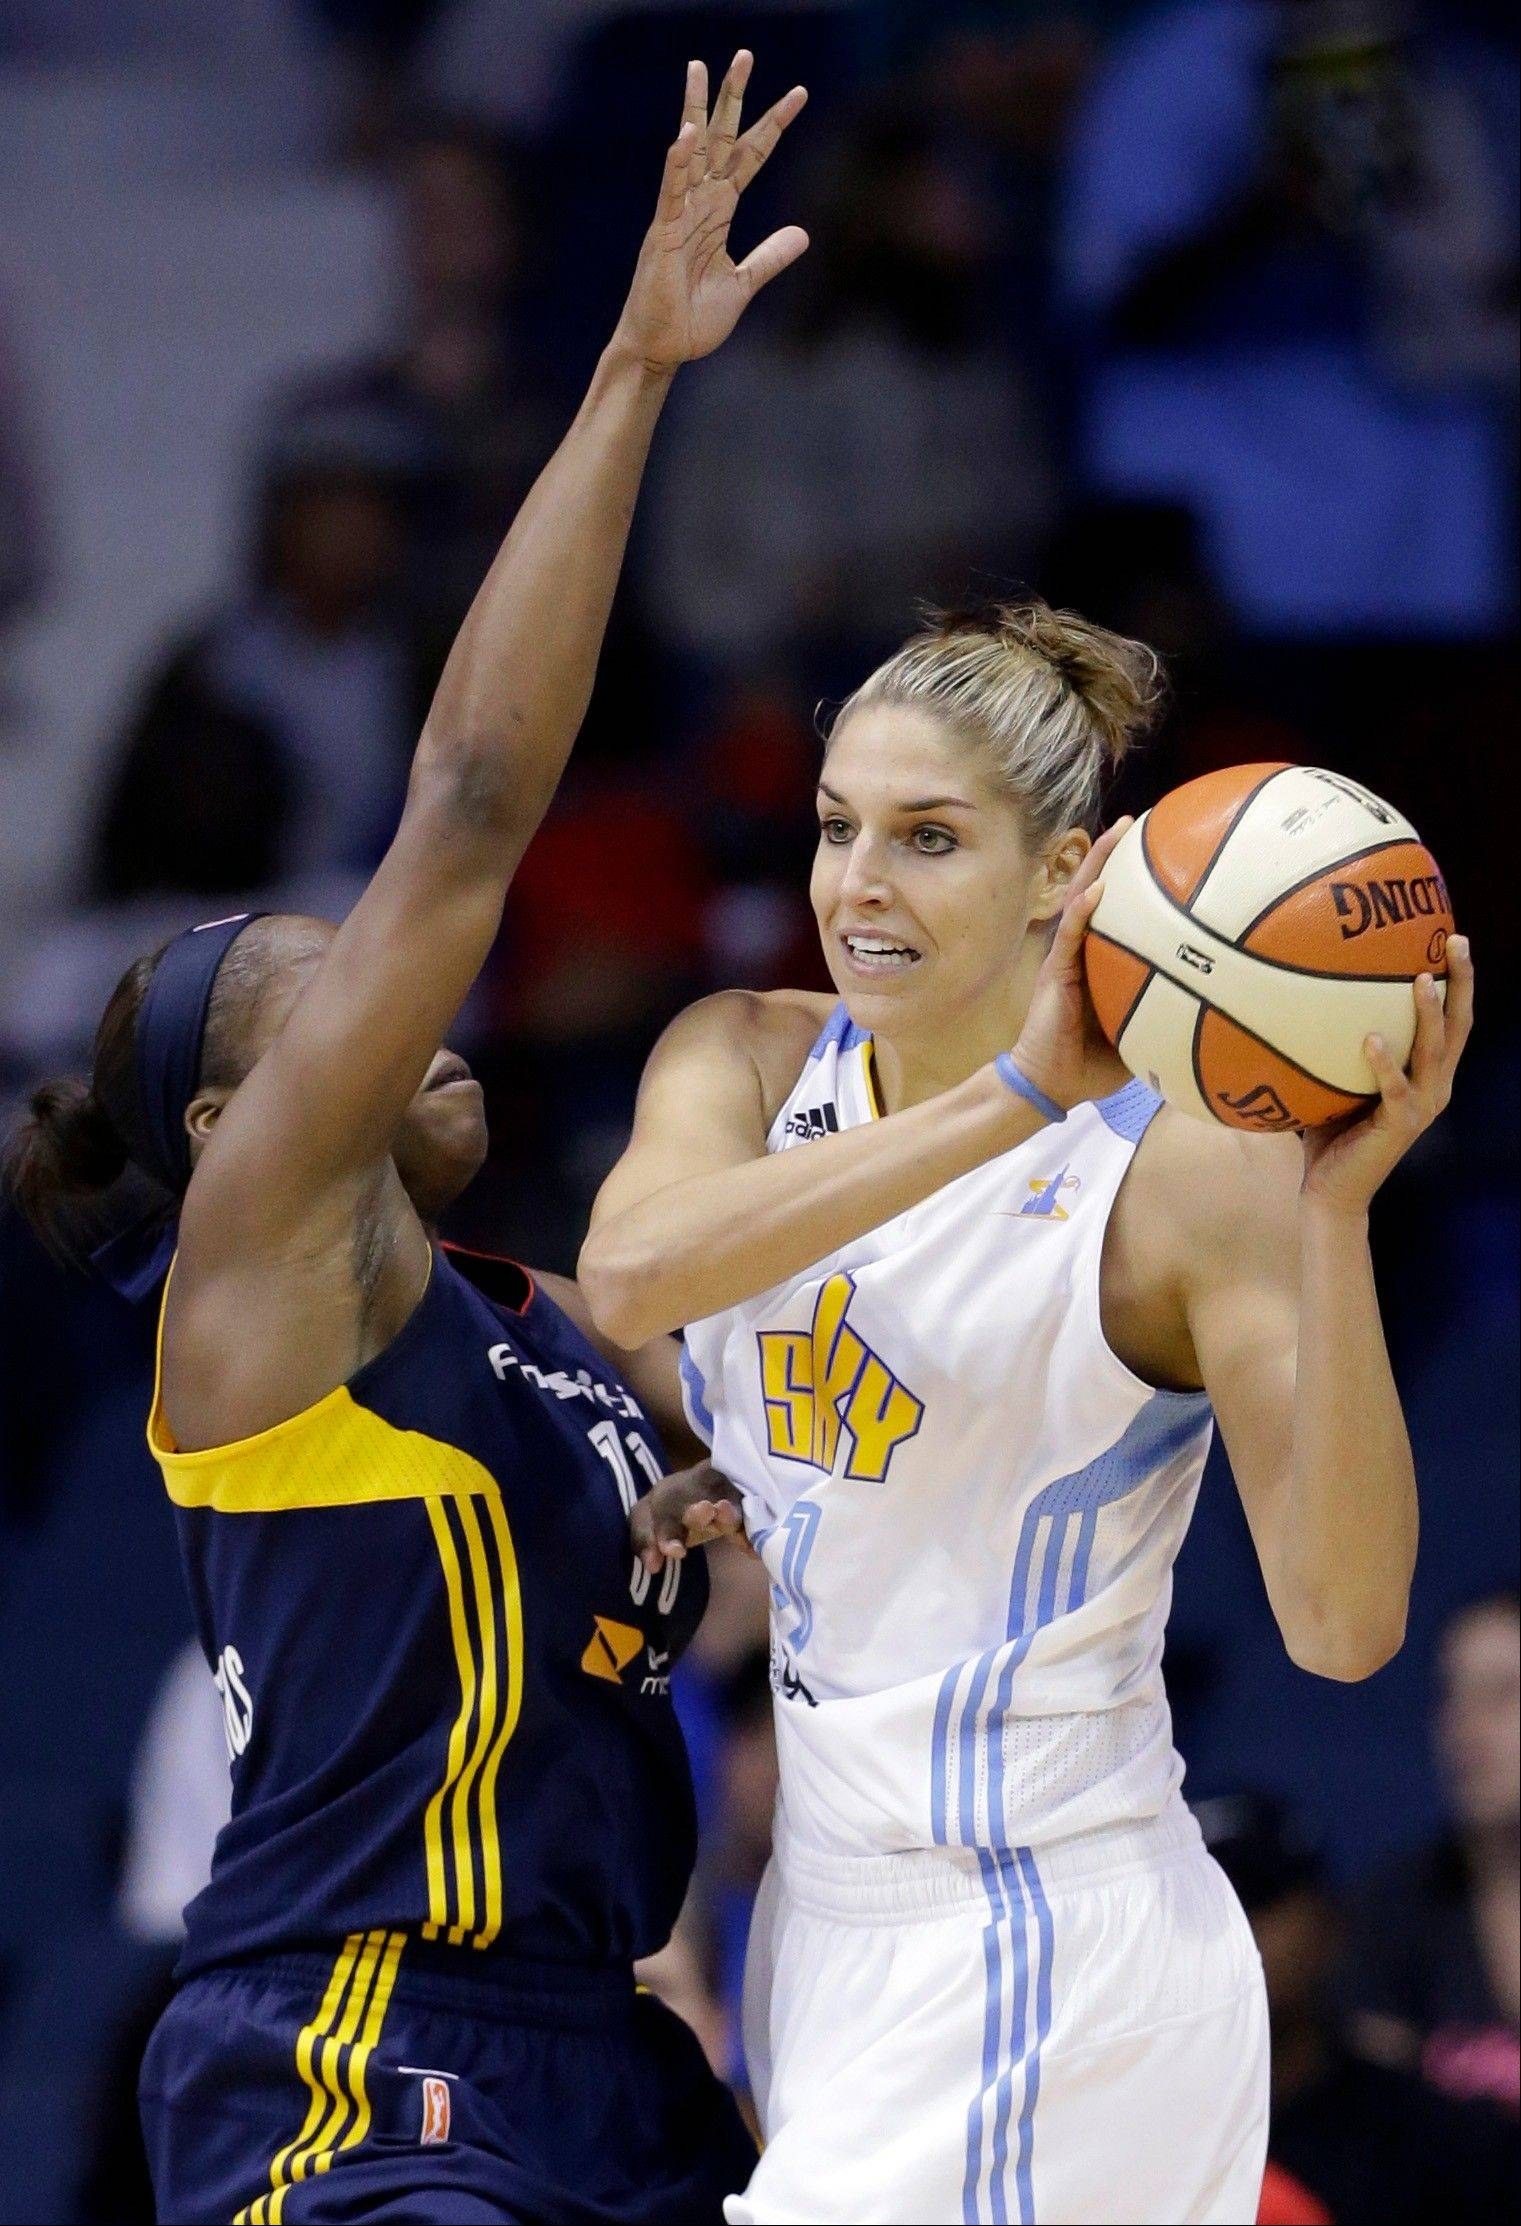 Chicago Sky rookie Elena Delle Donne, right, had 20 points against the Fever in Game 1, but it wasn't enough to get the win. The Sky faces elimination in Game 2 Sunday at Indianapolis, where the Sky is 2-15 alltime.